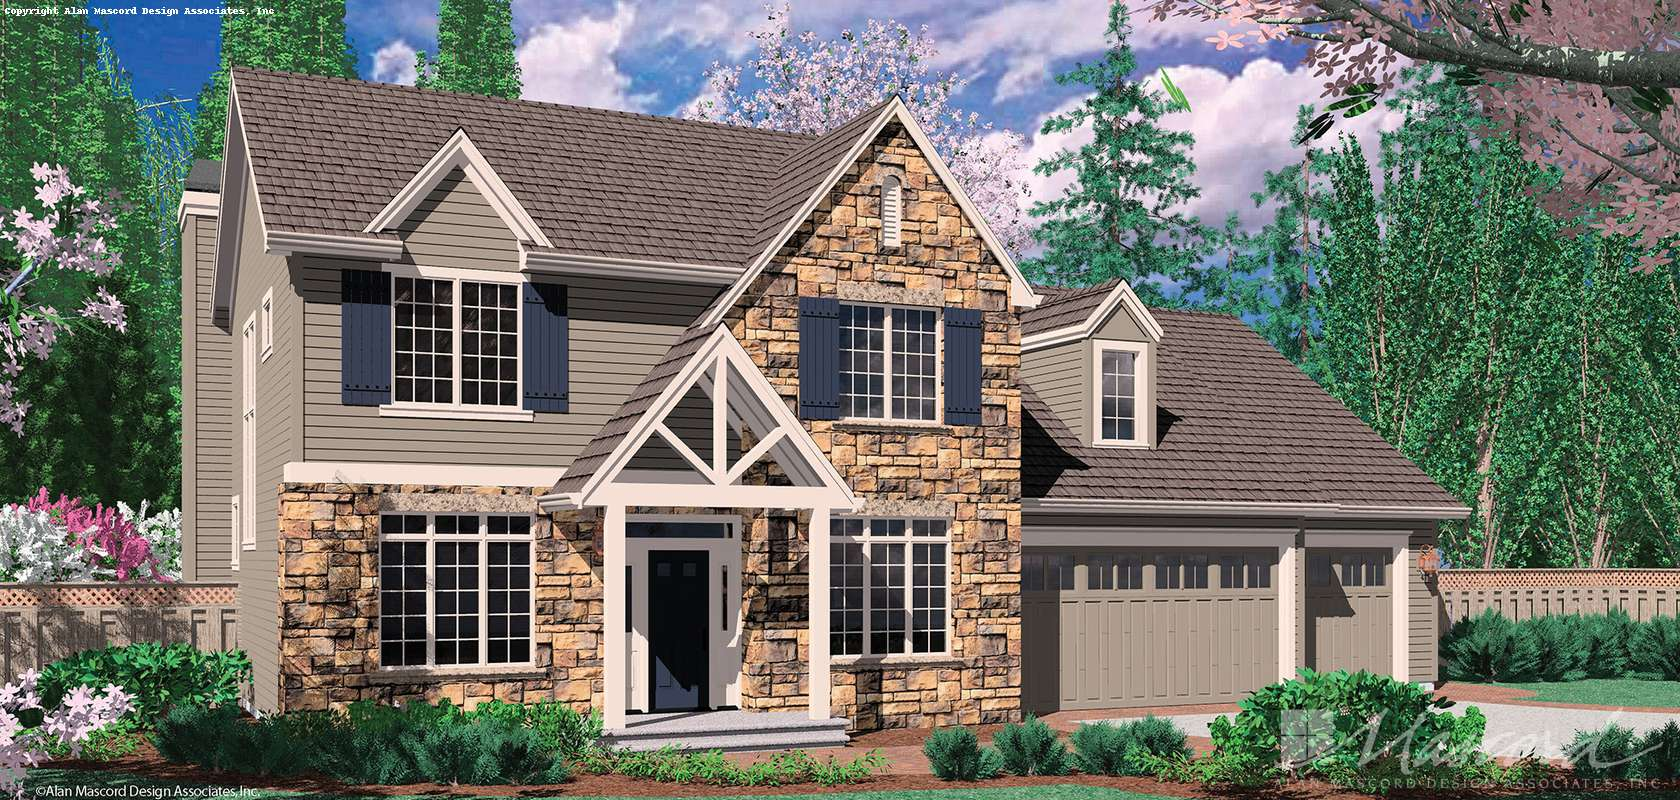 Mascord House Plan 22133: The Norton